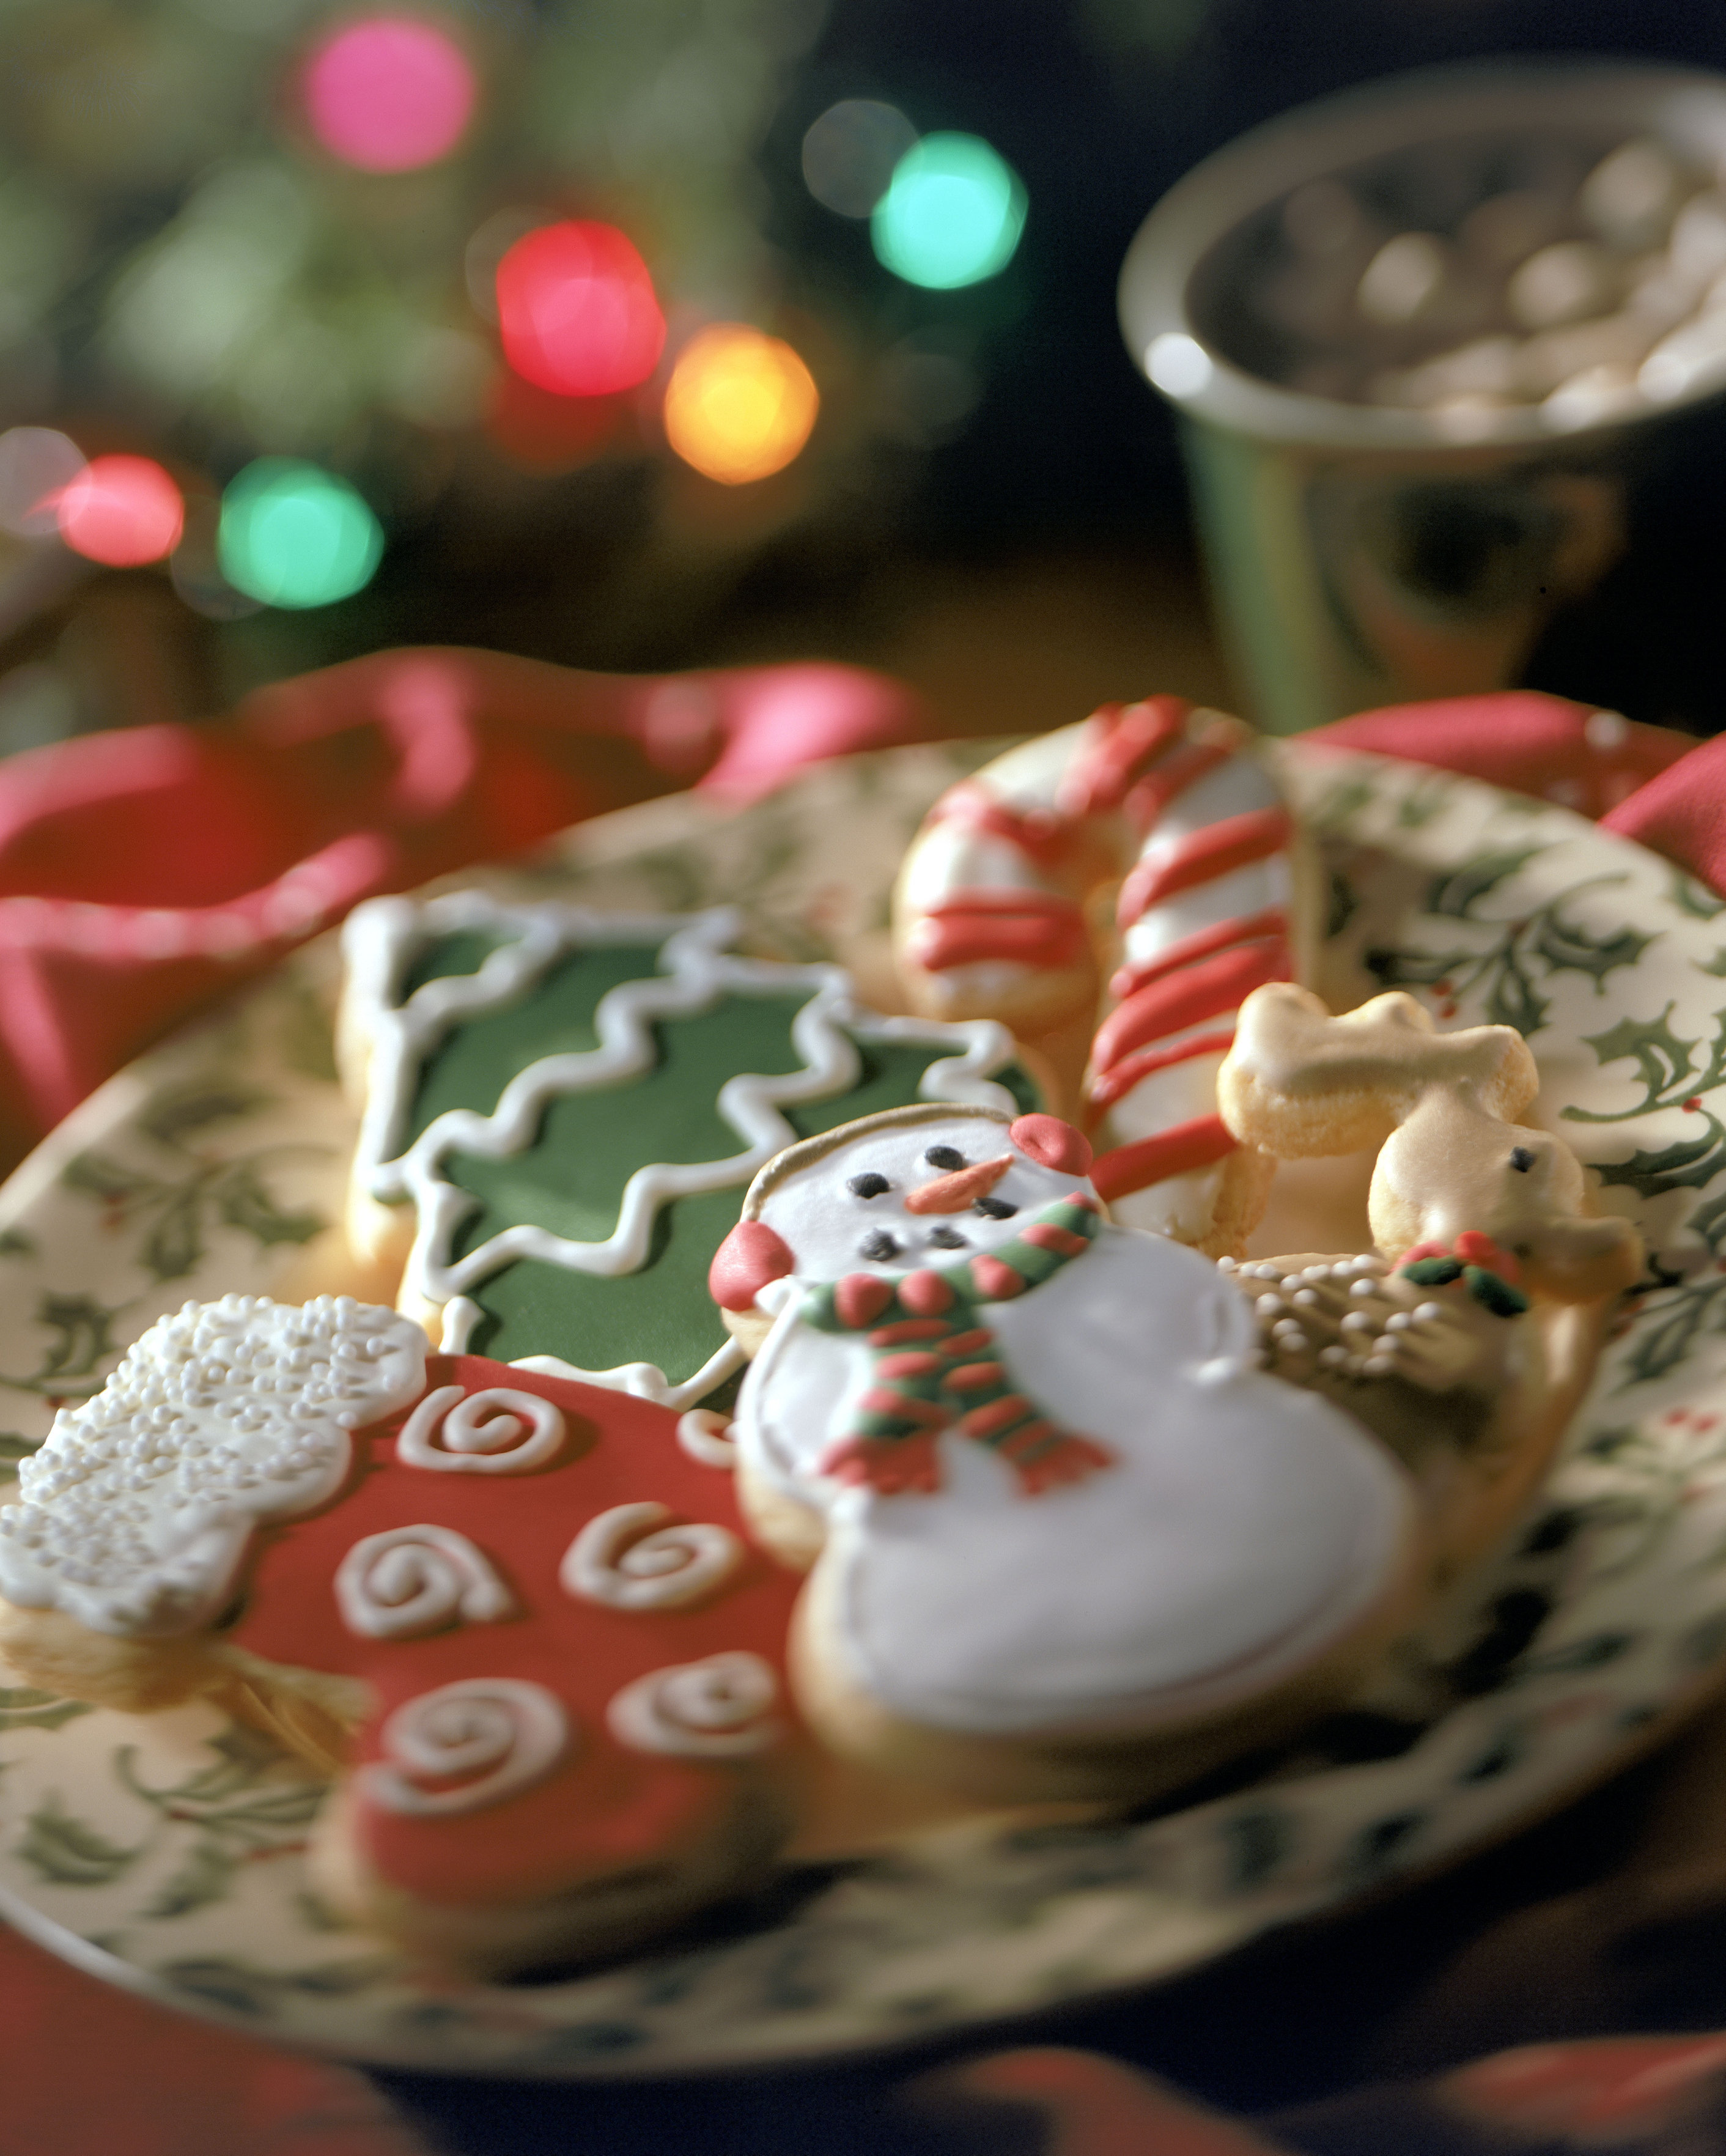 1. Frosted Sugar Cookies